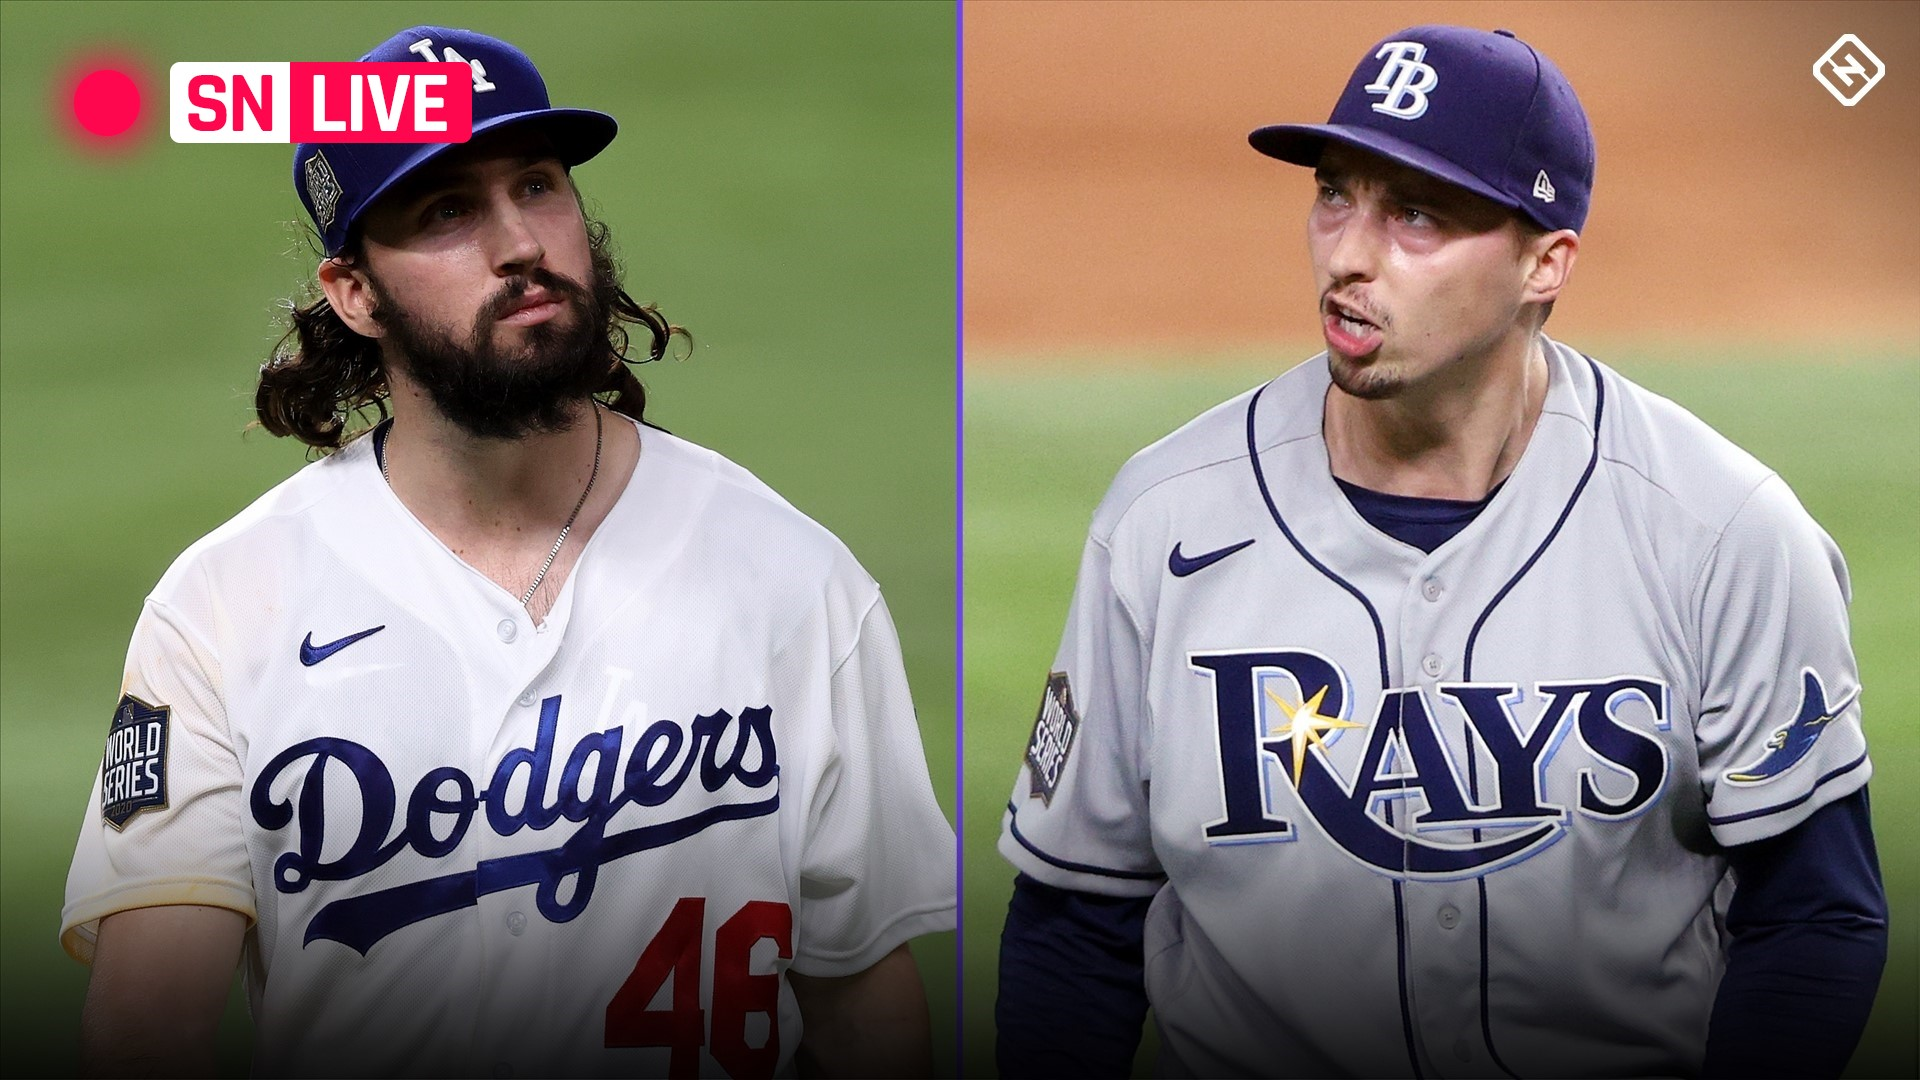 Dodgers vs Rays live score updates highlights from Game 6 of the 2020 World Series